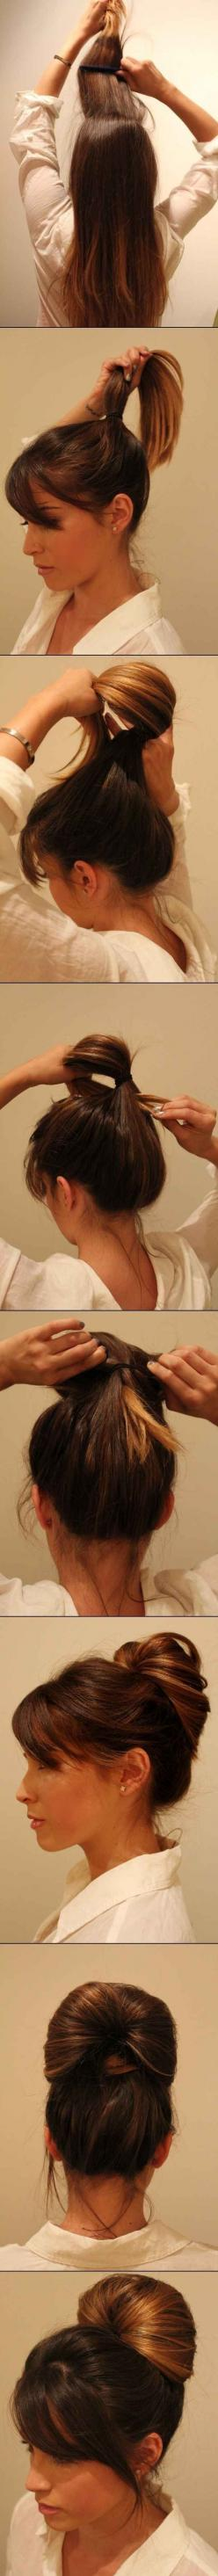 Cet élégant chignon prend seulement une minute à réaliser et donne l'air suffisamment pro pour pouvoir être porté au travail.: Up Dos, Hairstyles, Hair Styles, Hairdos, Hair Tutorial, Long Hair, Hair Do, Updos